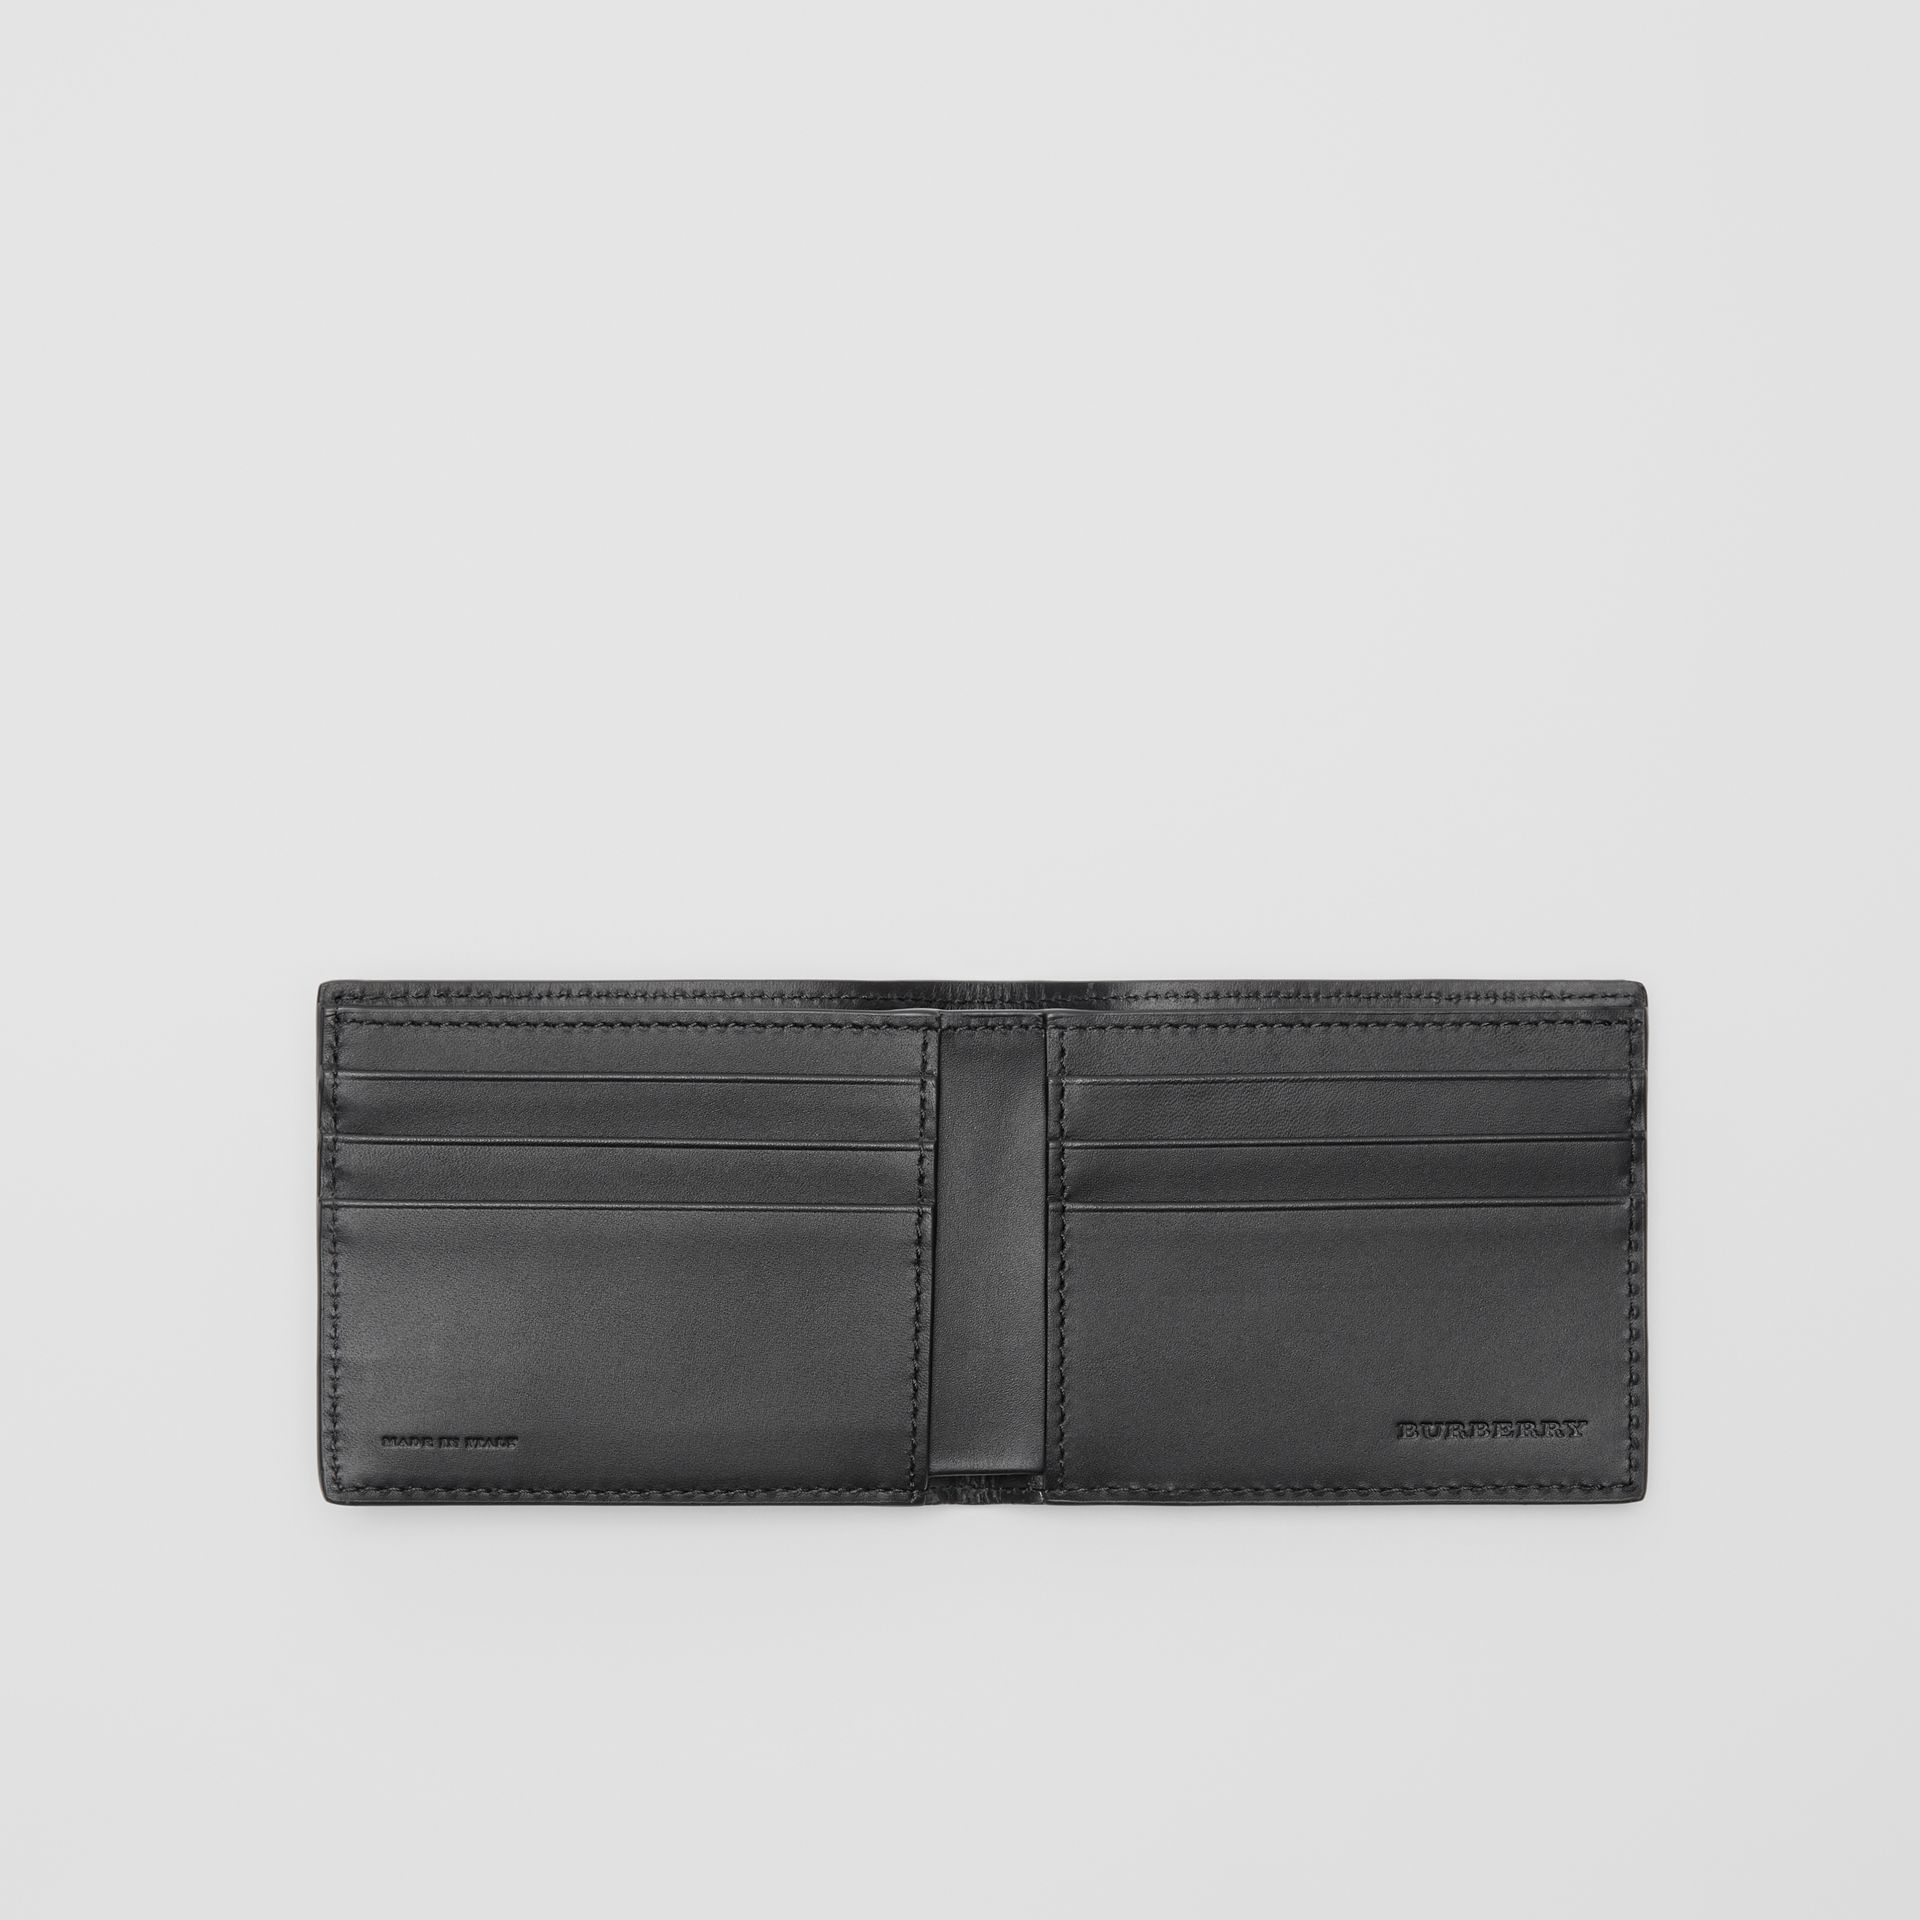 London Leather Bifold Wallet in Black - Men | Burberry - gallery image 2